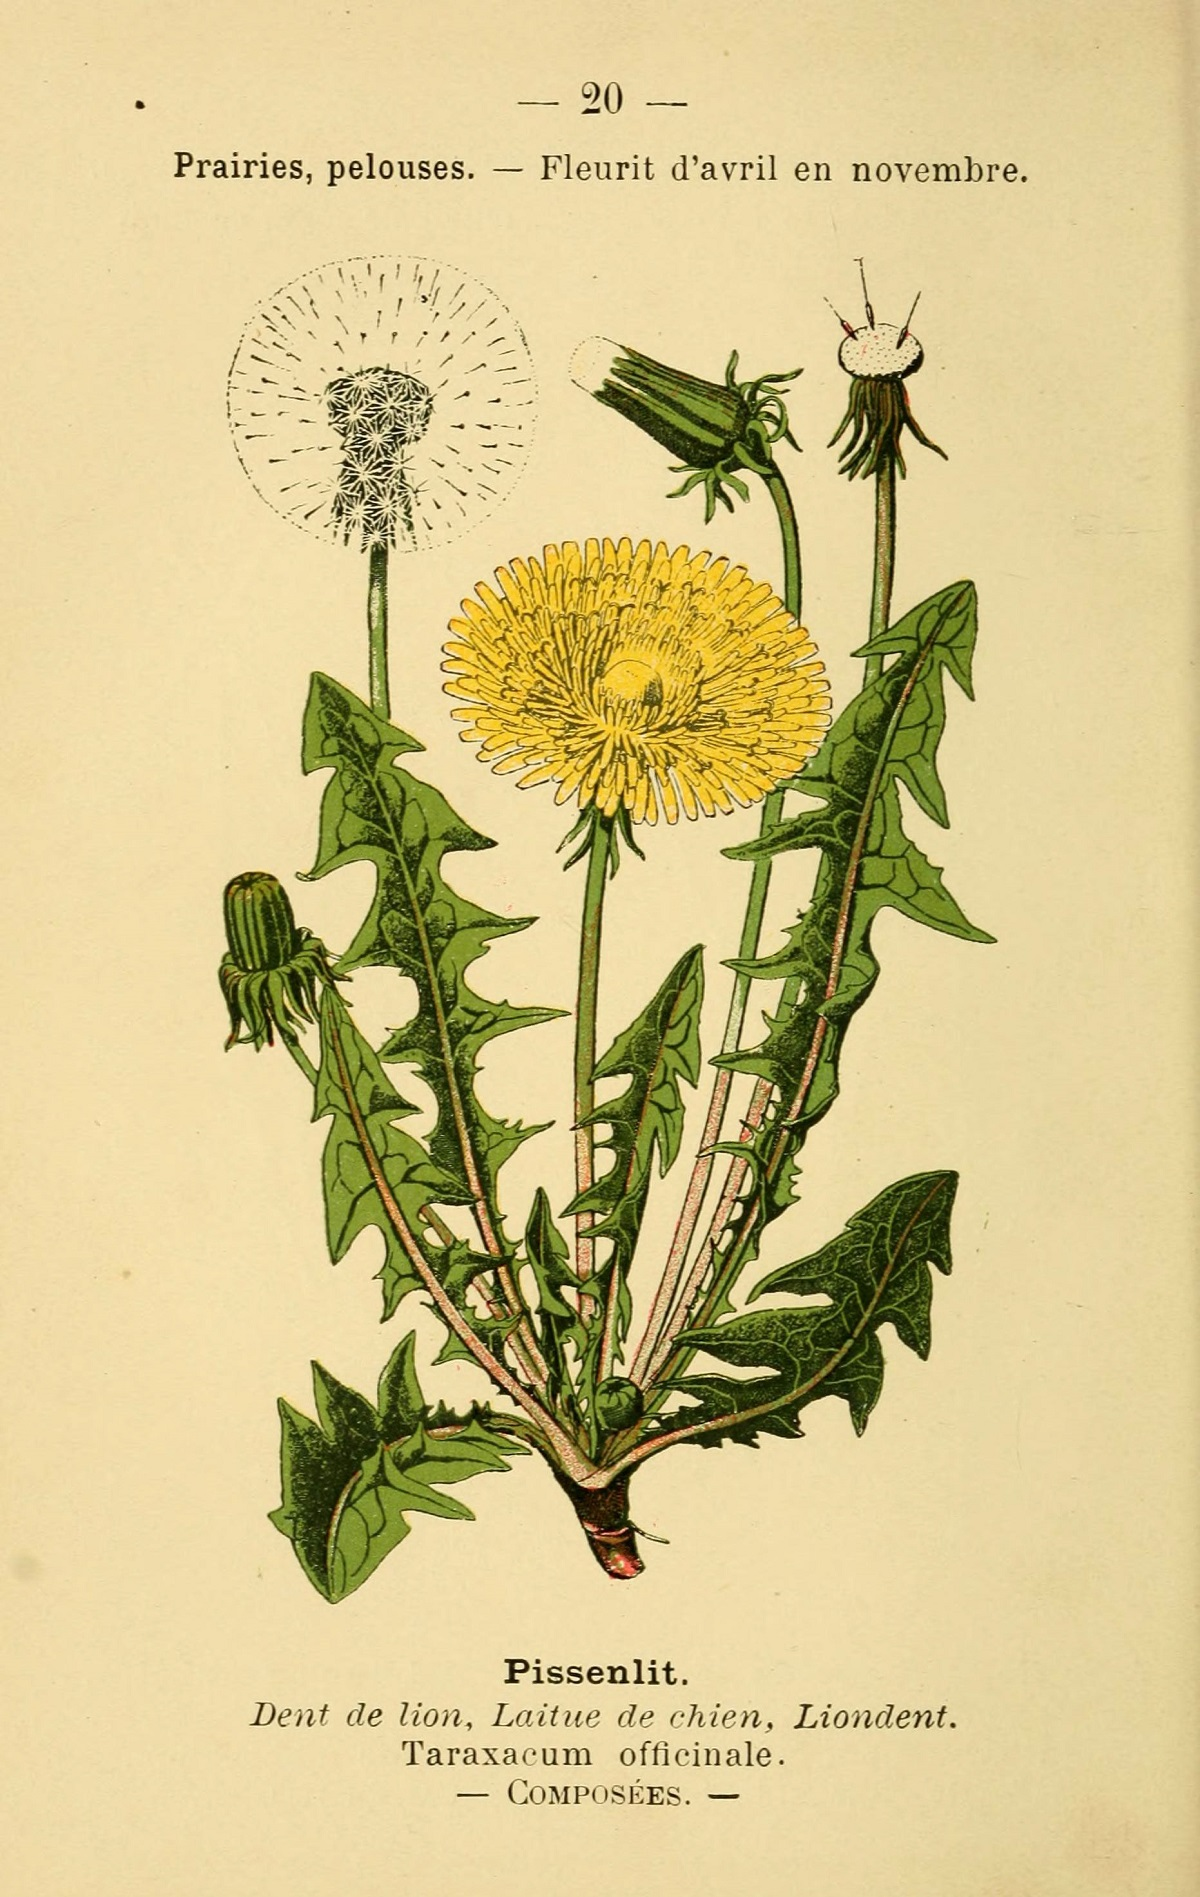 A dandelion illustration